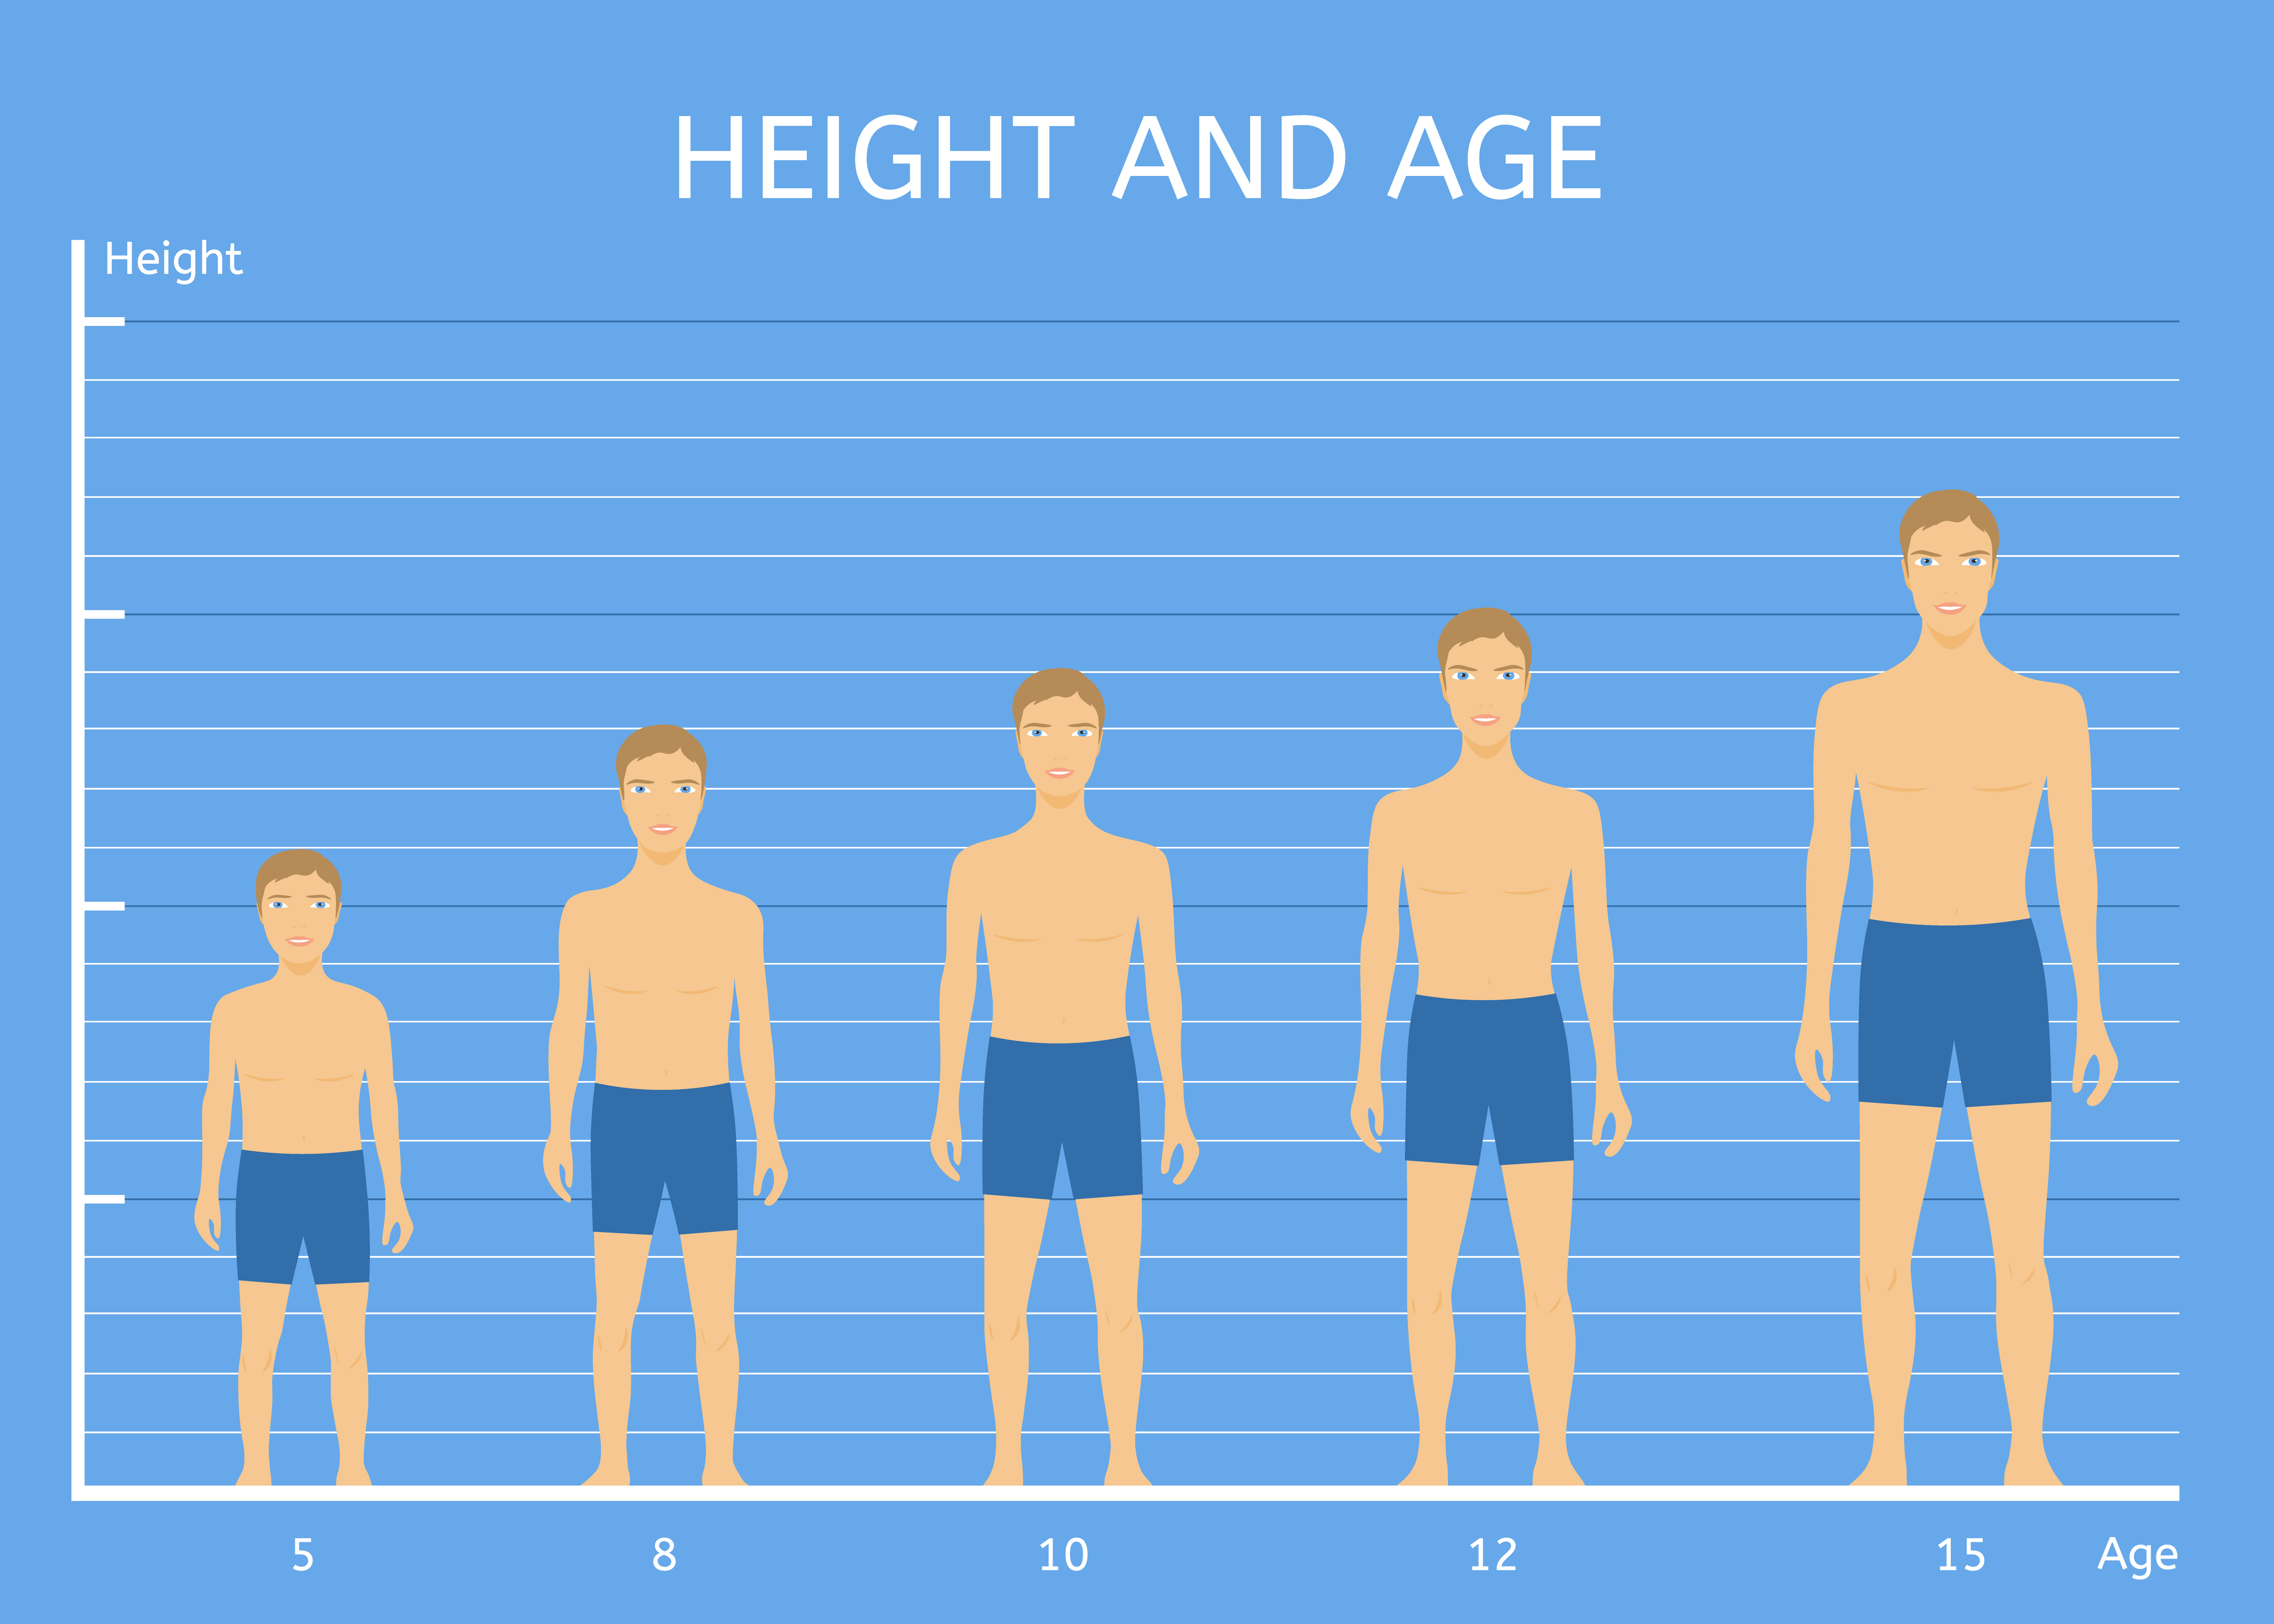 Human Heights, Average Height, Average Heights